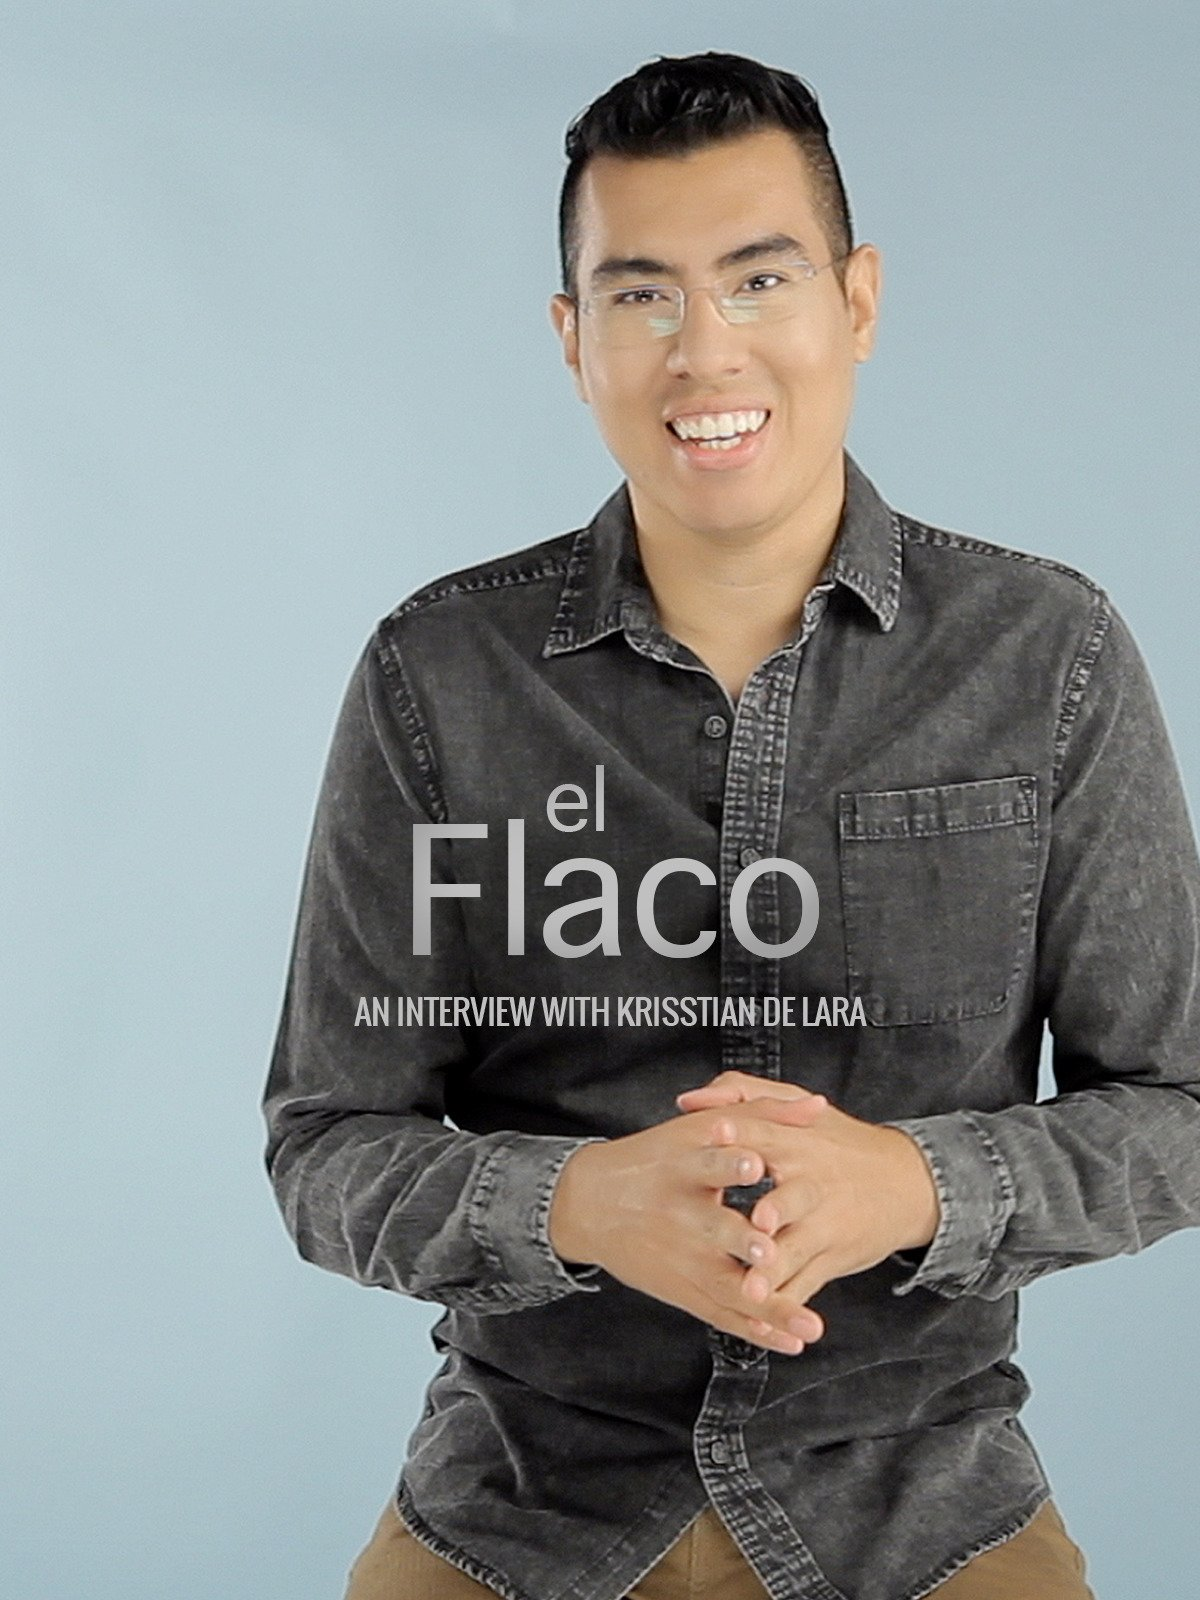 El Flaco Interview